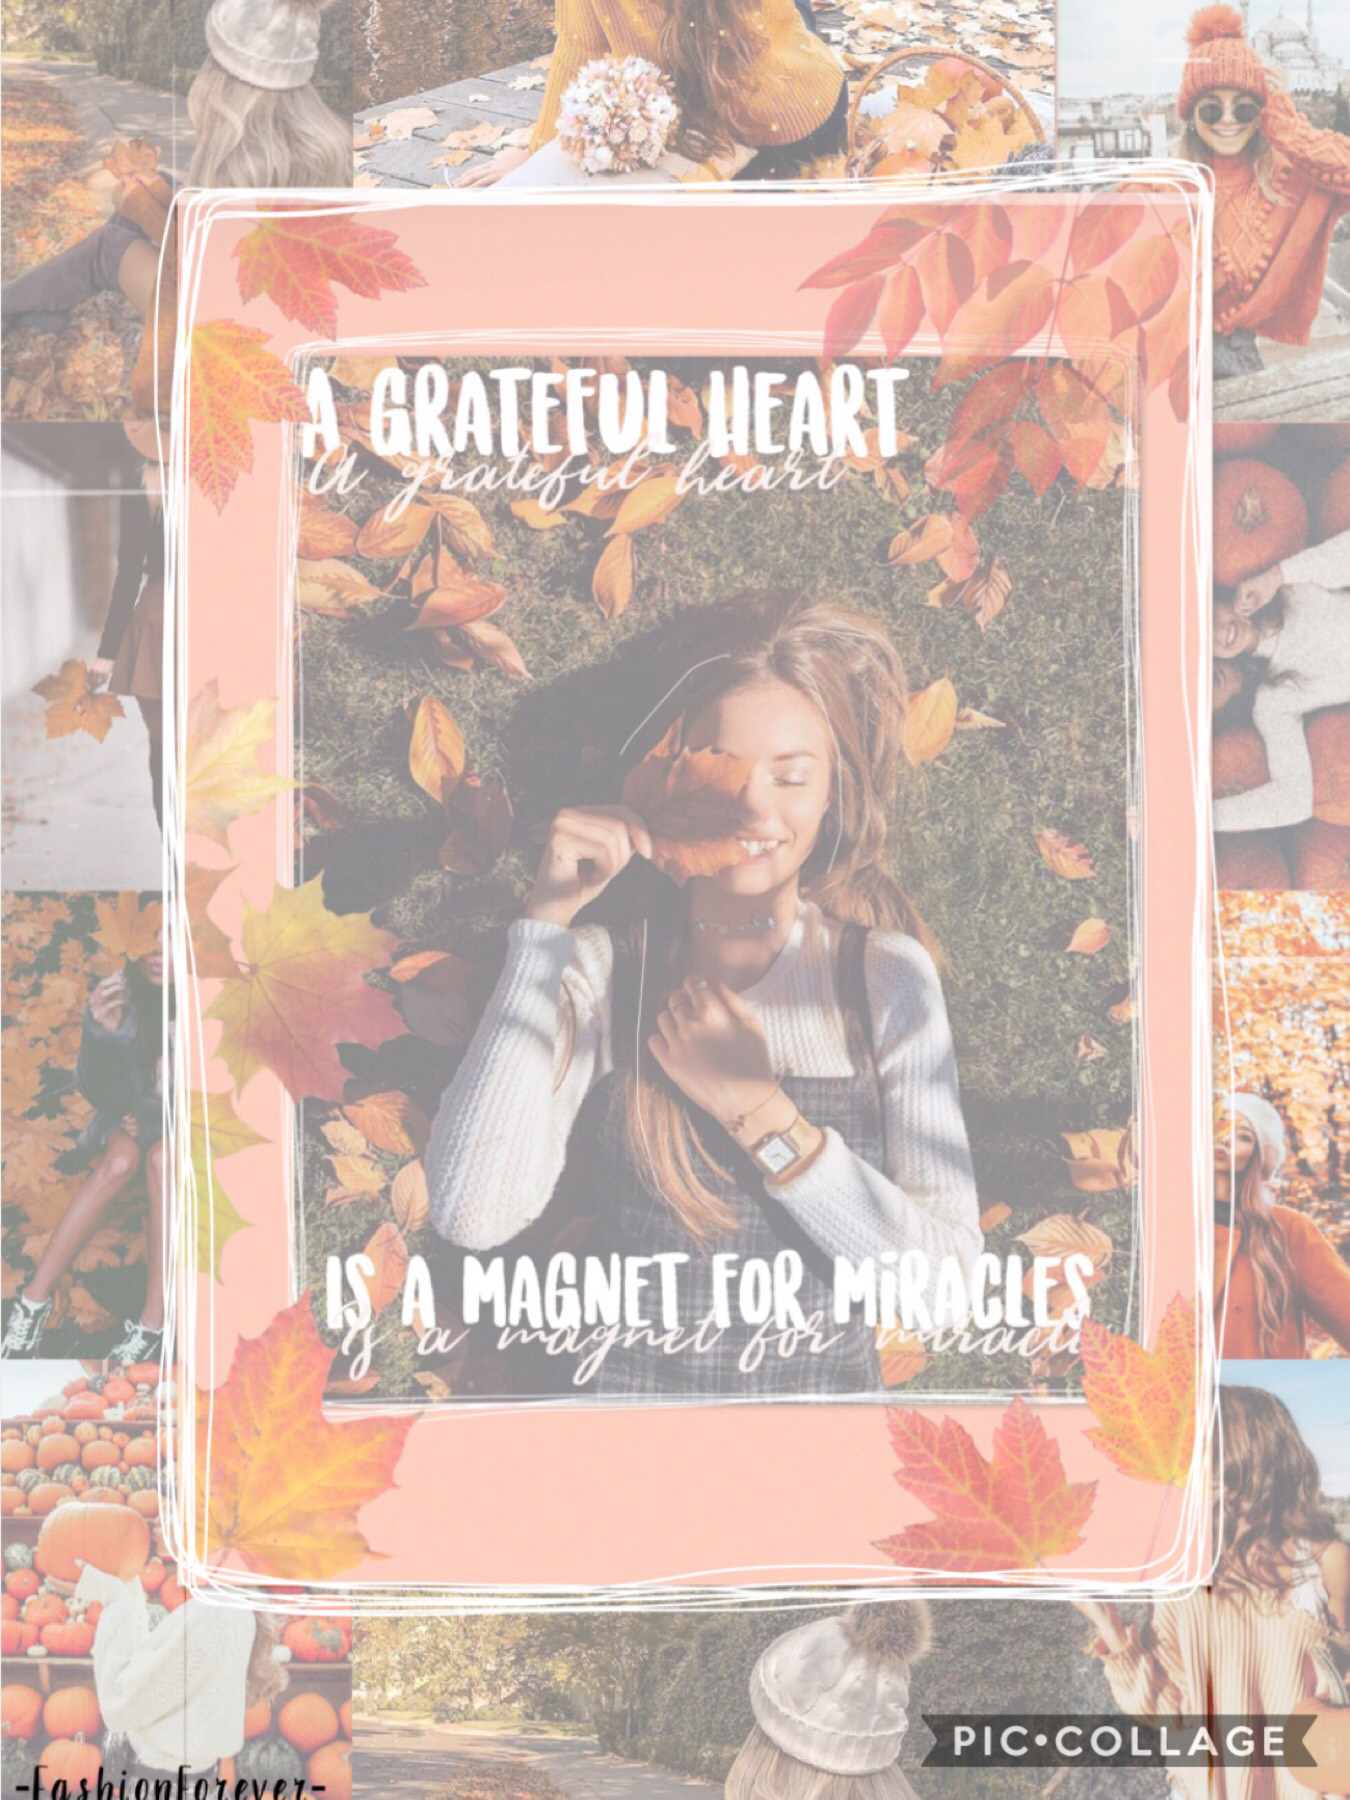 🍂🍁11-21-18🍂🍁 Hey gorgeous! I used this for a contest. Rate /10? Q// What's ur favorite thing about Thanksgiving? A// The gathering of my friends and fam! Honestly, it's the only time we sit down as a family🙃